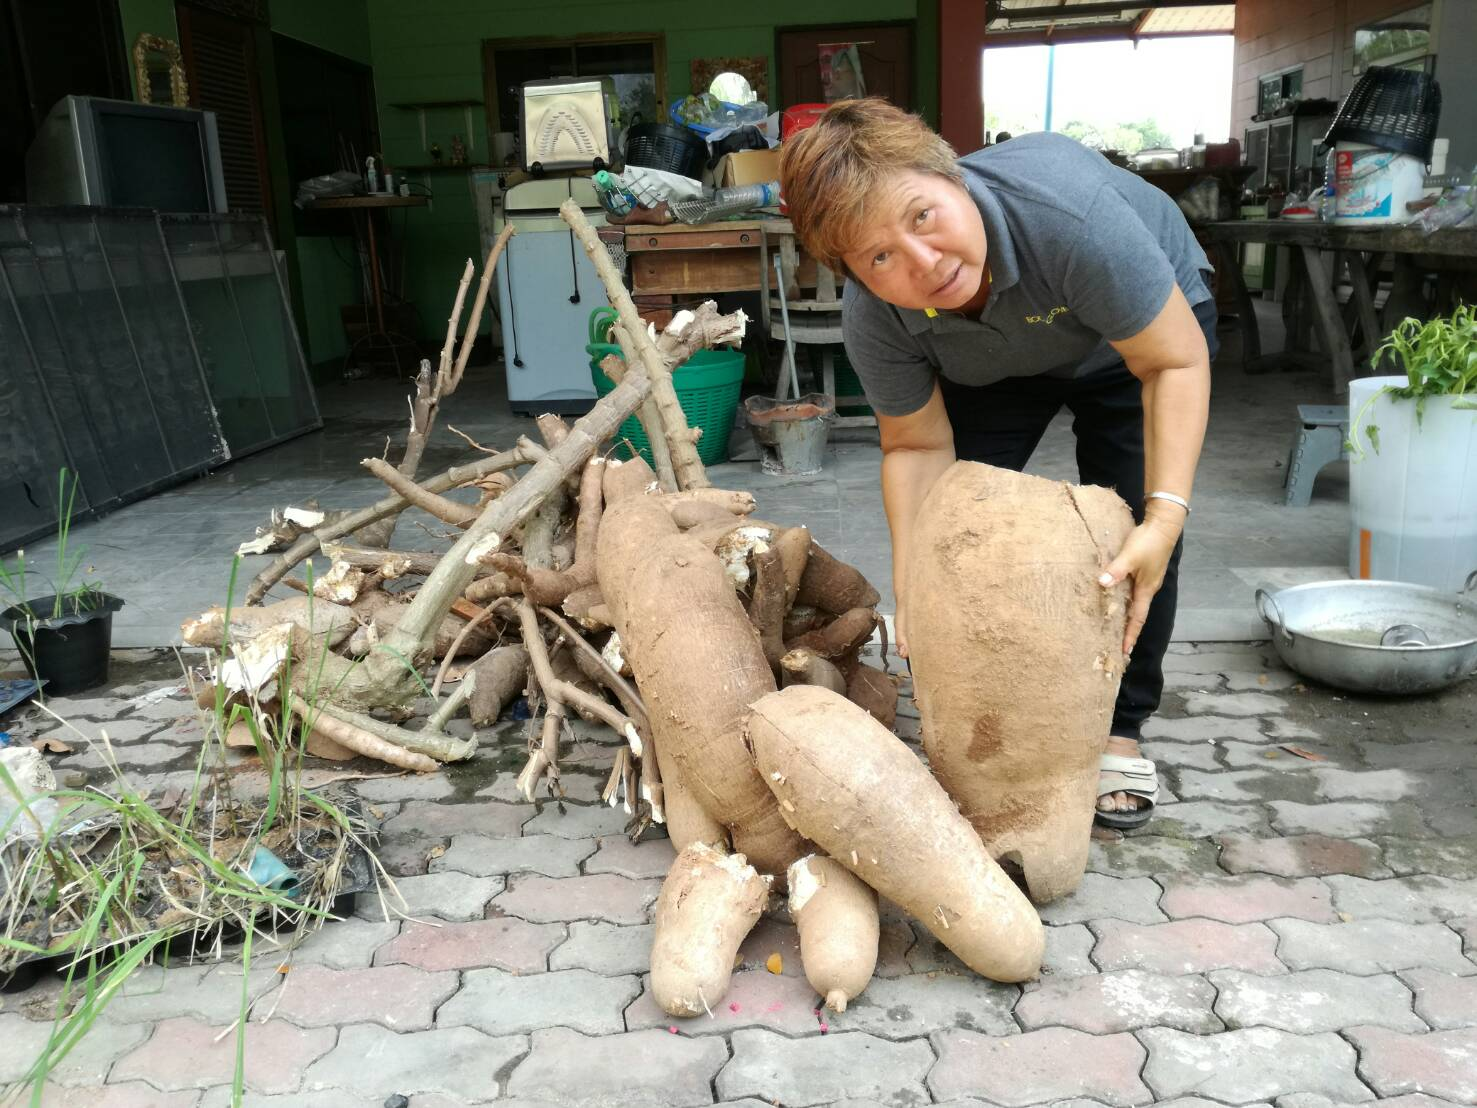 Chaweewan Bill, who grows vegetables in the backyard of her house on Soi Wat Boonkanjanaram 8, dug up a cassava tuber weighing in excess of 25 kilograms, about 150 percent larger than average for her garden. A helper also dug up two nearby tubers weighing 20 kg. and 15 kg.